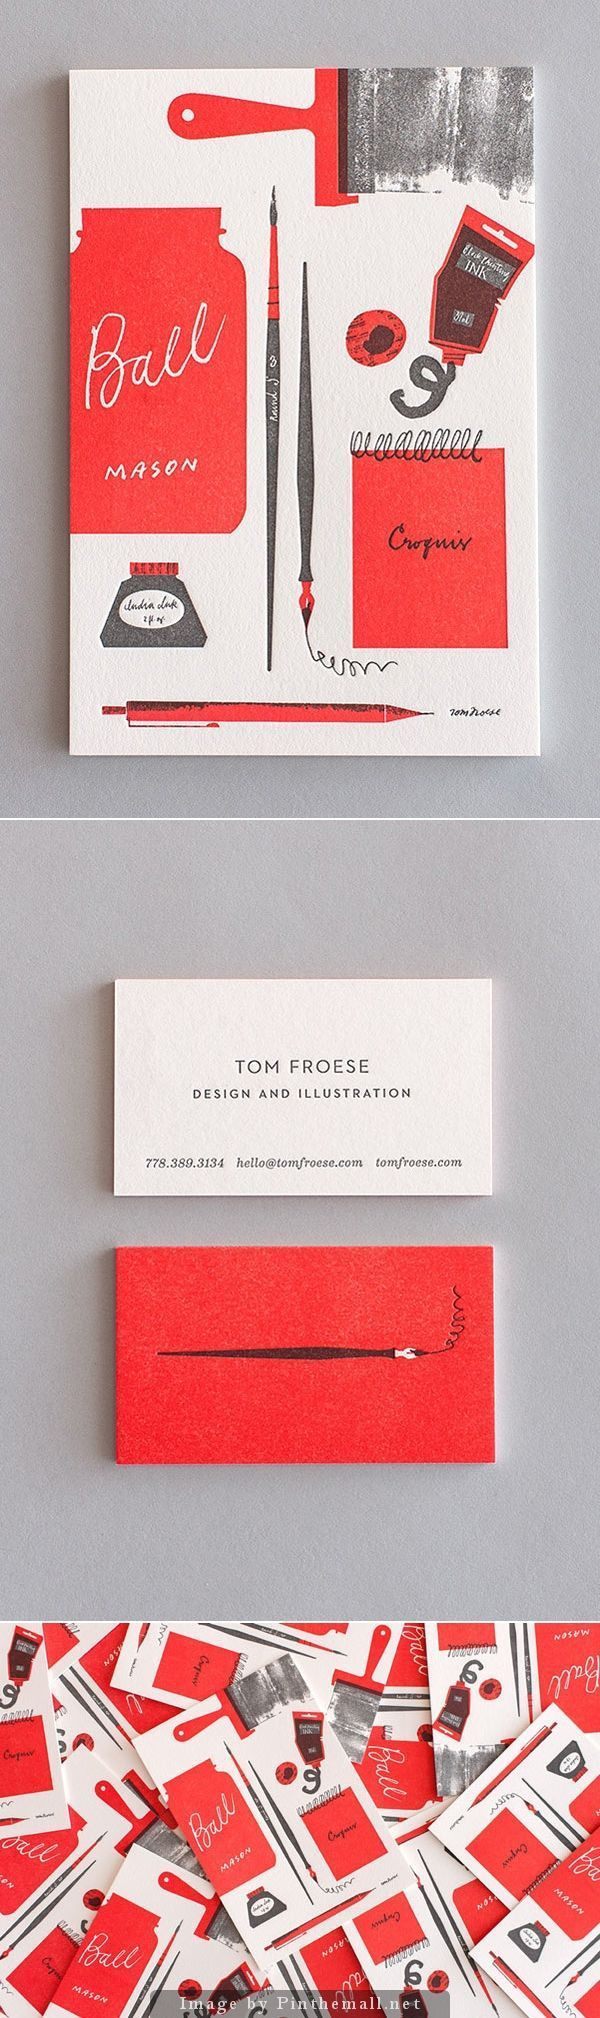 Tom Froese's Illustrated Personal Stationery Design, via From up North